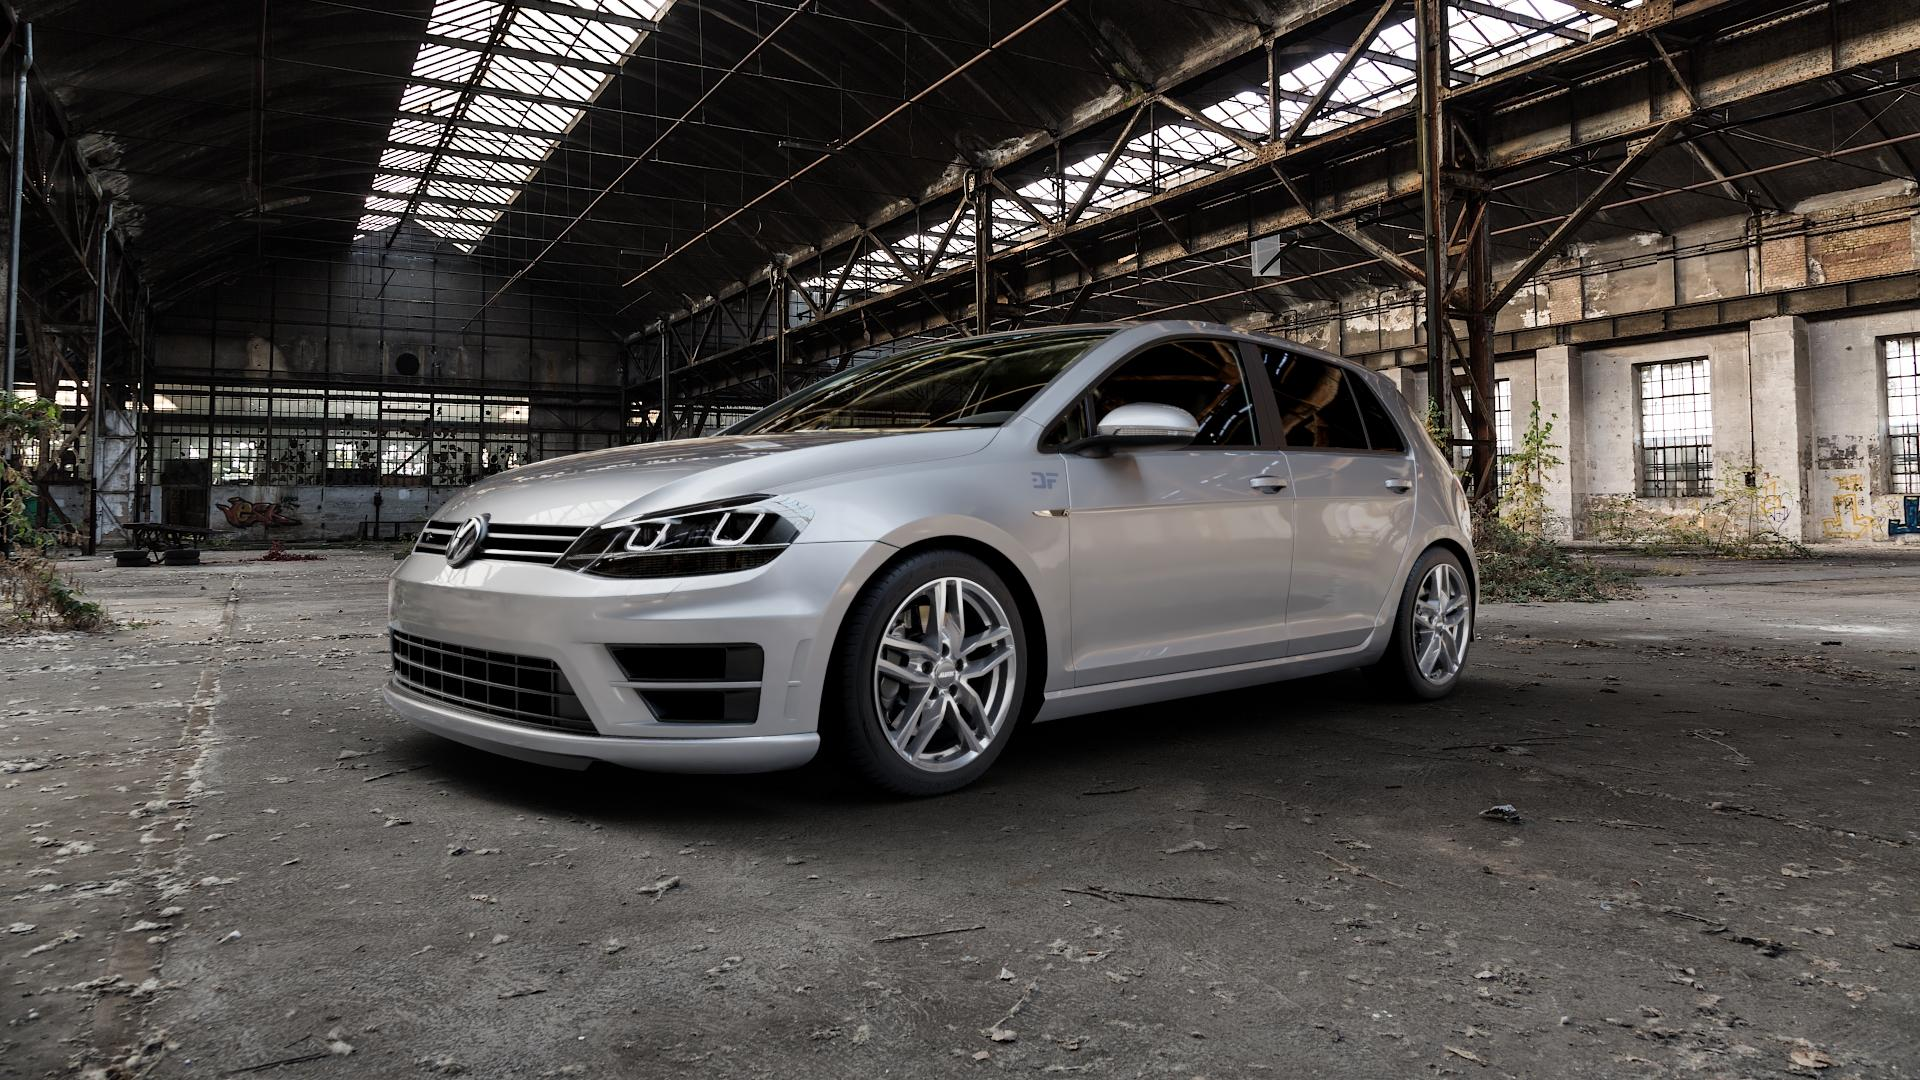 ALUTEC Ikenu metal-grey Felge mit Reifen grau in 17Zoll Winterfelge Alufelge auf silbernem Volkswagen (VW) Golf 7 2,0l R 4motion 221kW (300 PS) l kW (0 Facelift 4Motion 228kW (310 213kW (290 ⬇️ mit 15mm Tieferlegung ⬇️ Industriehalle 1 Camera_000